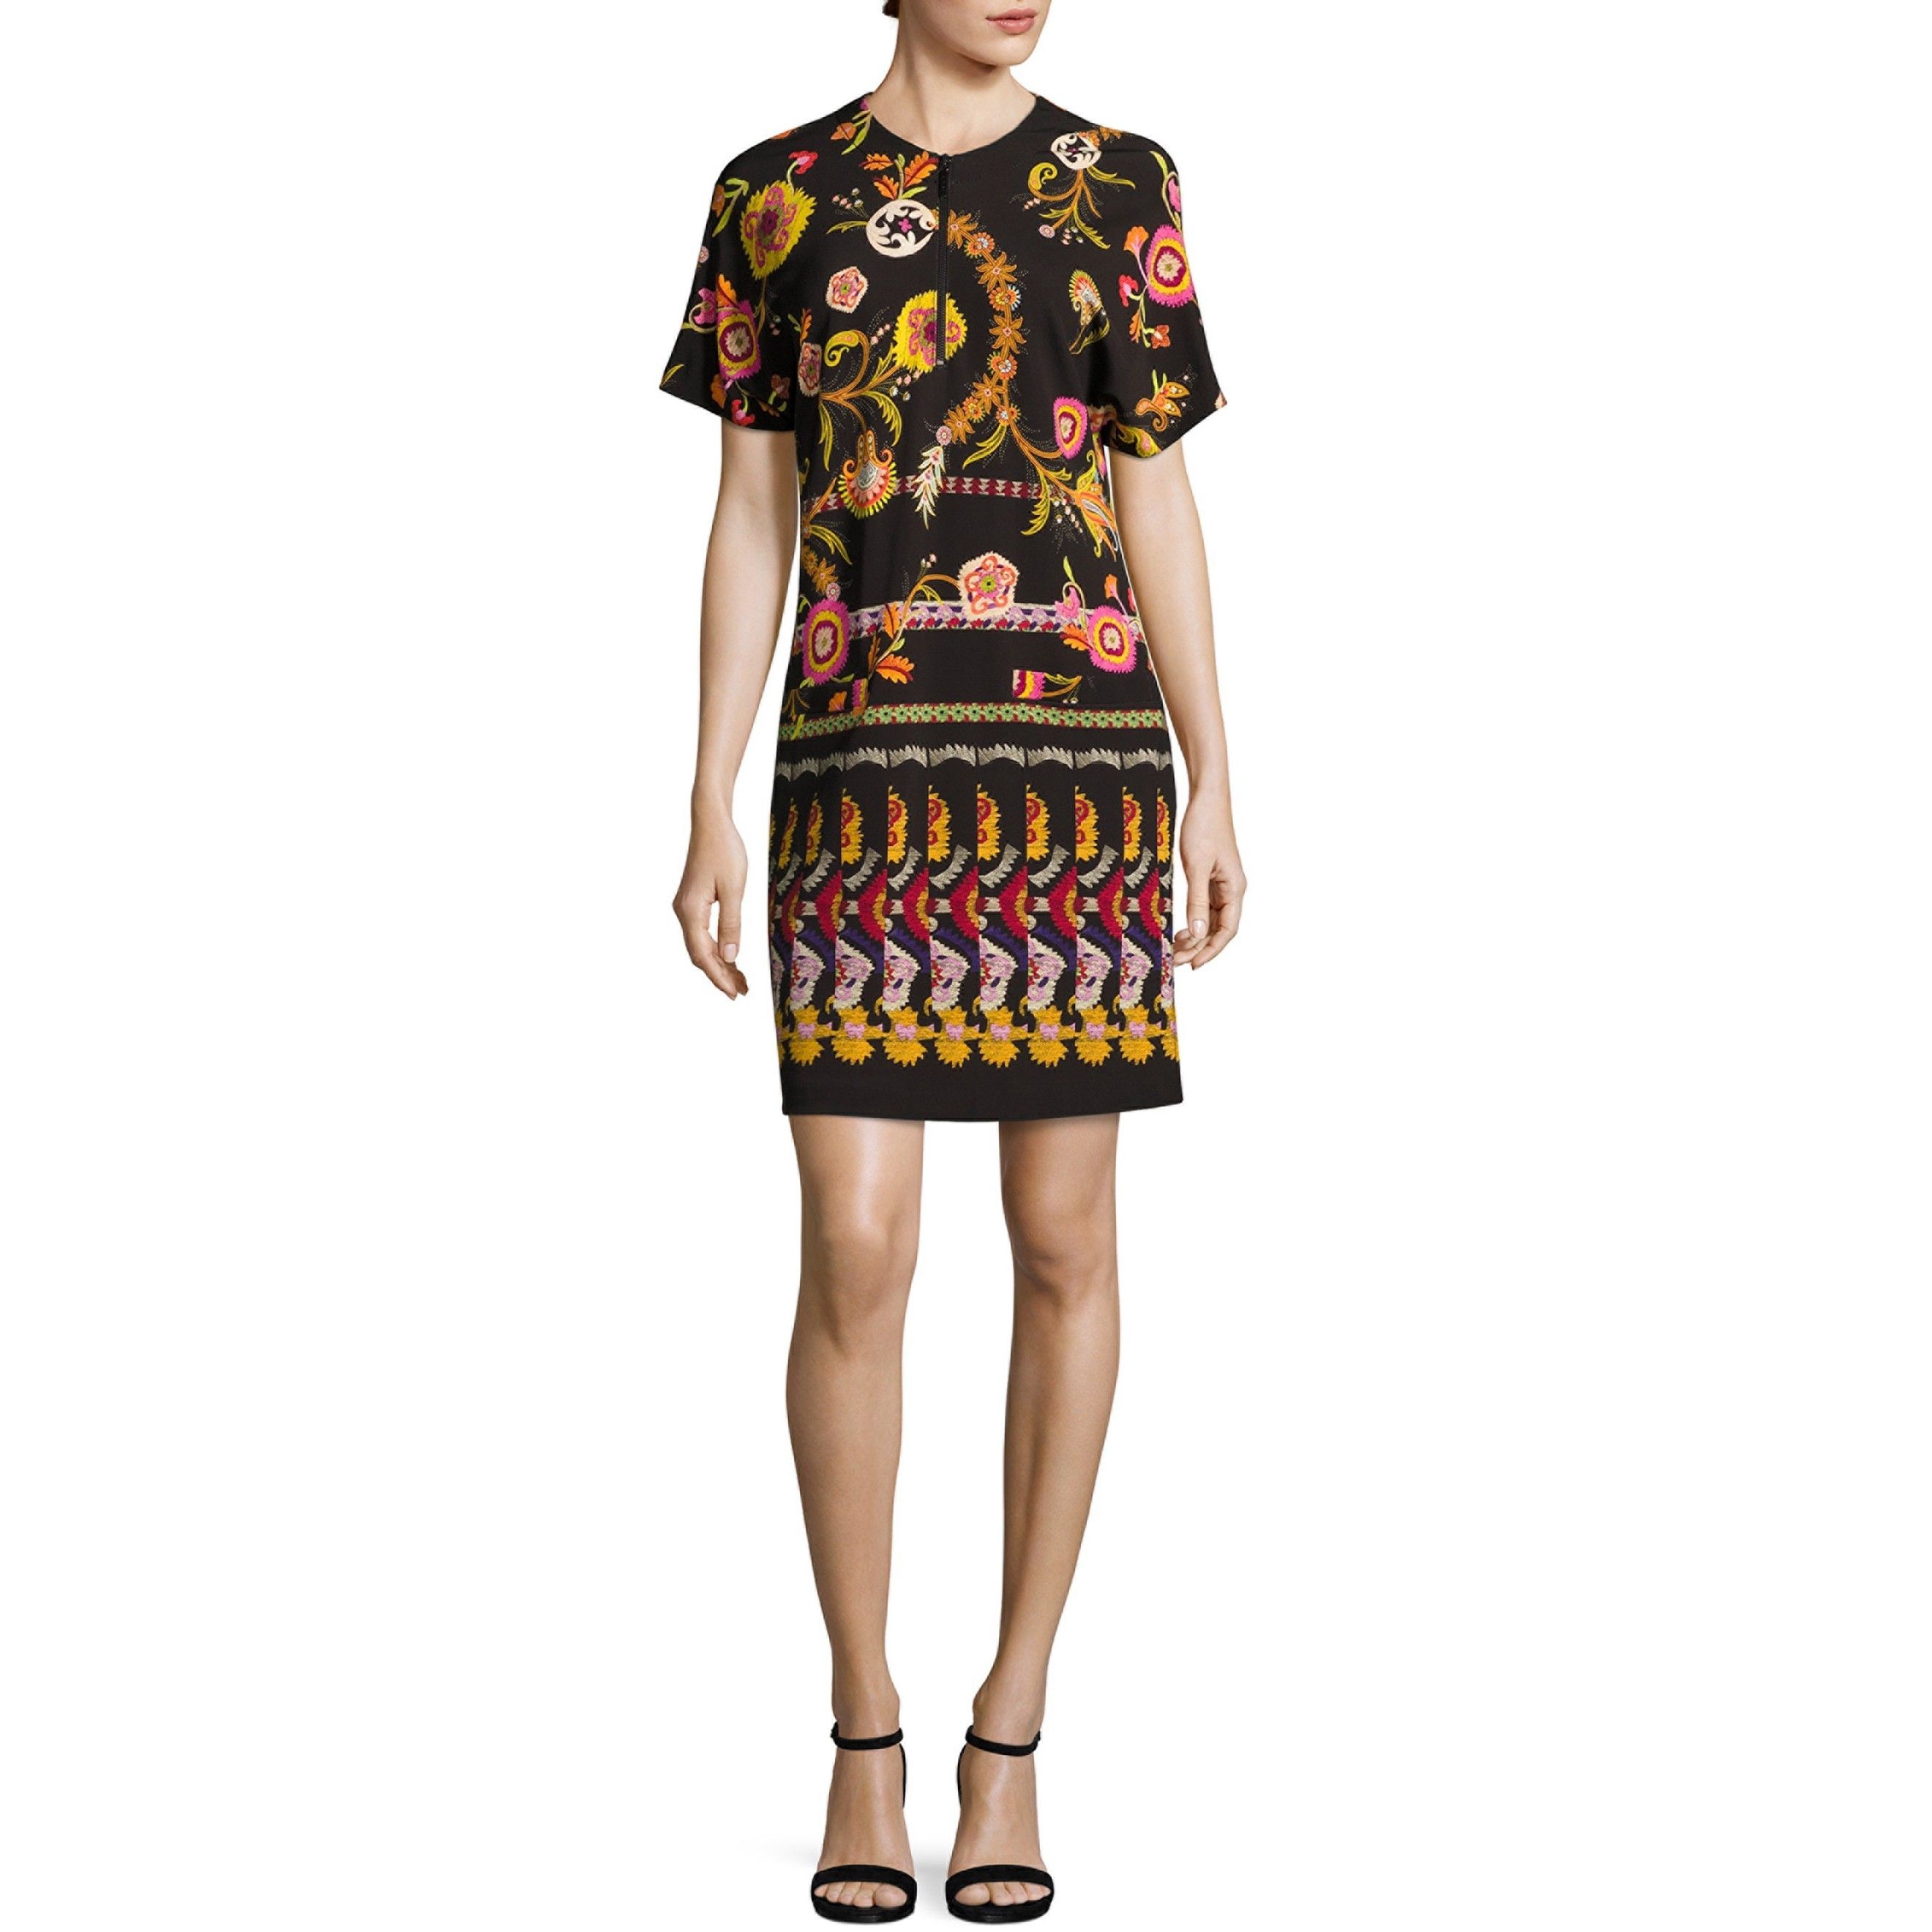 Floral-printed jersey dress Etro whTH42